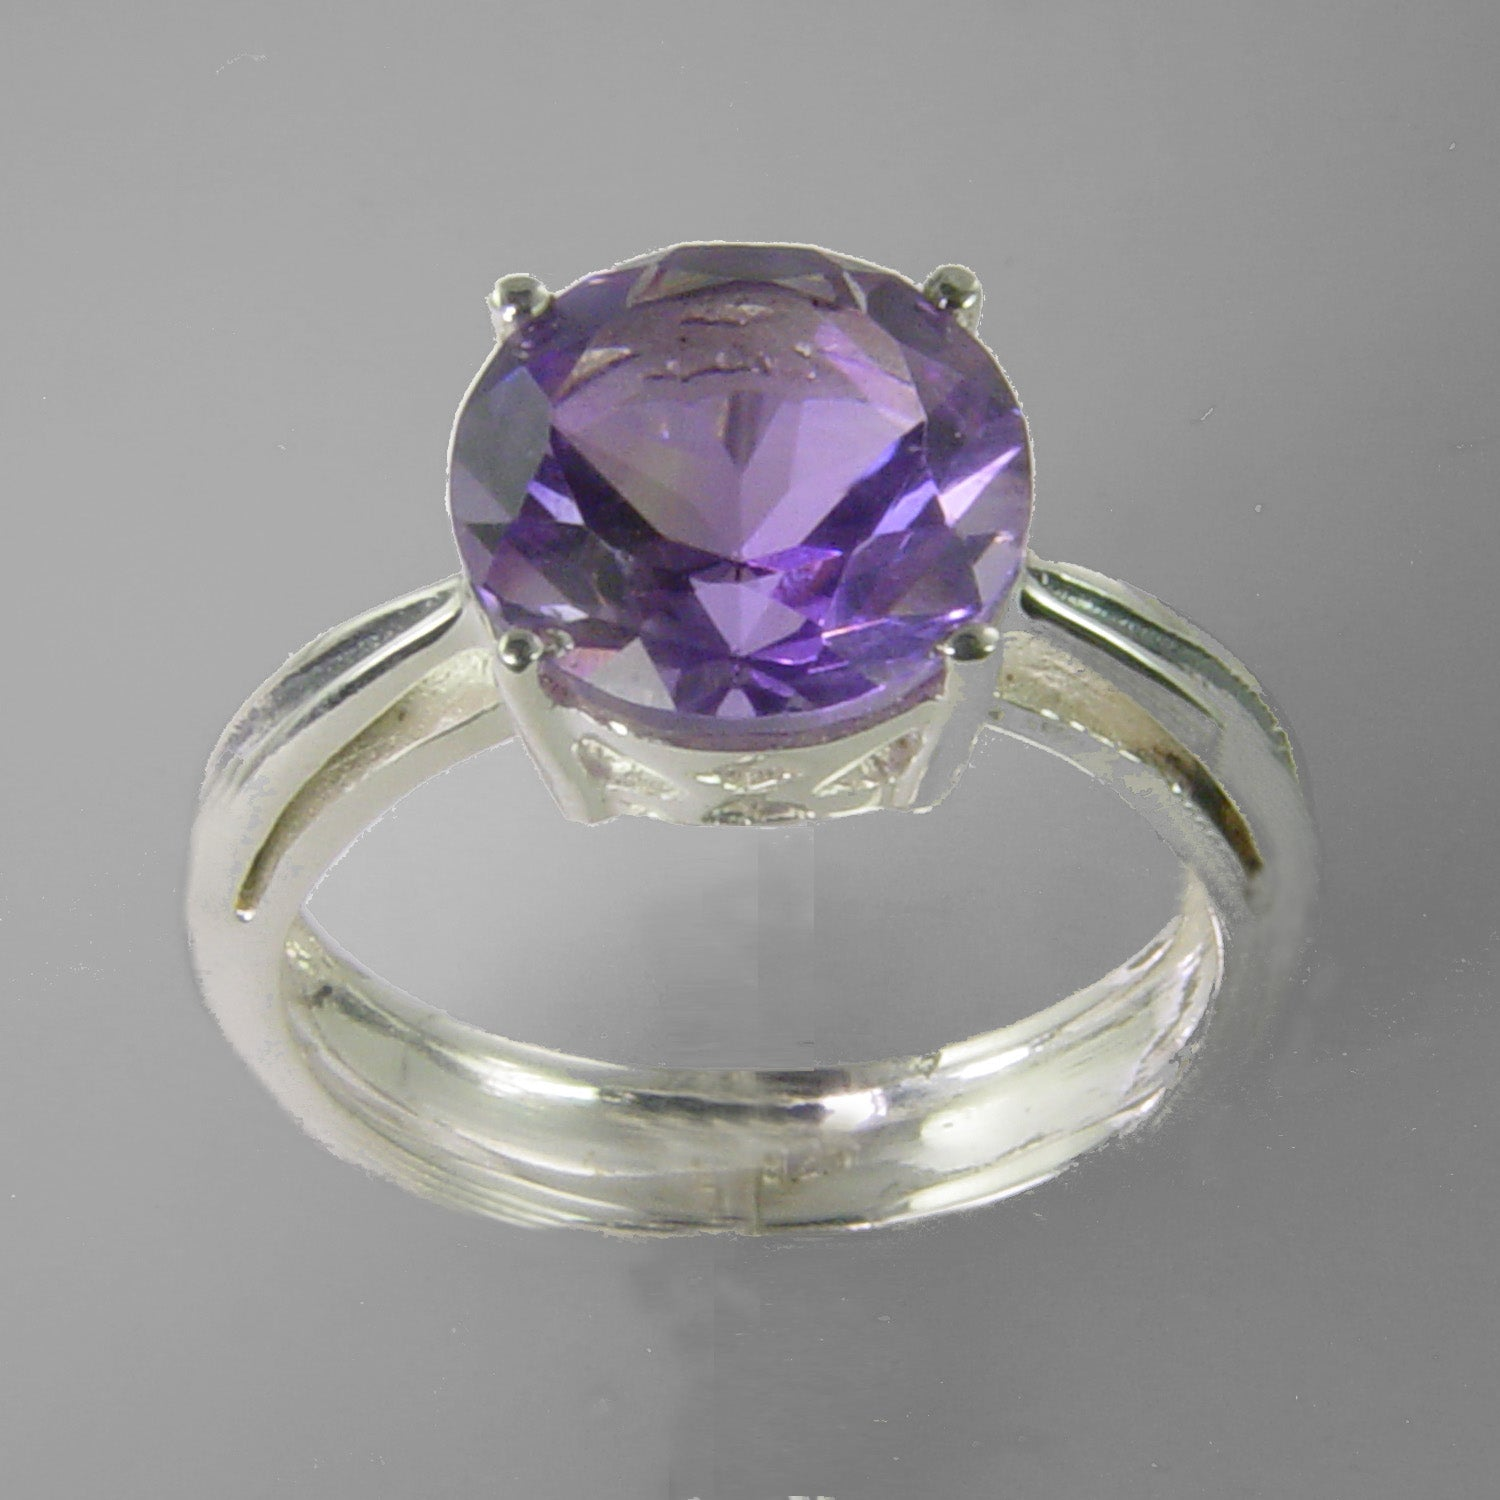 Amethyst 3.4 ct Round Sterling Silver Ring, Size 8